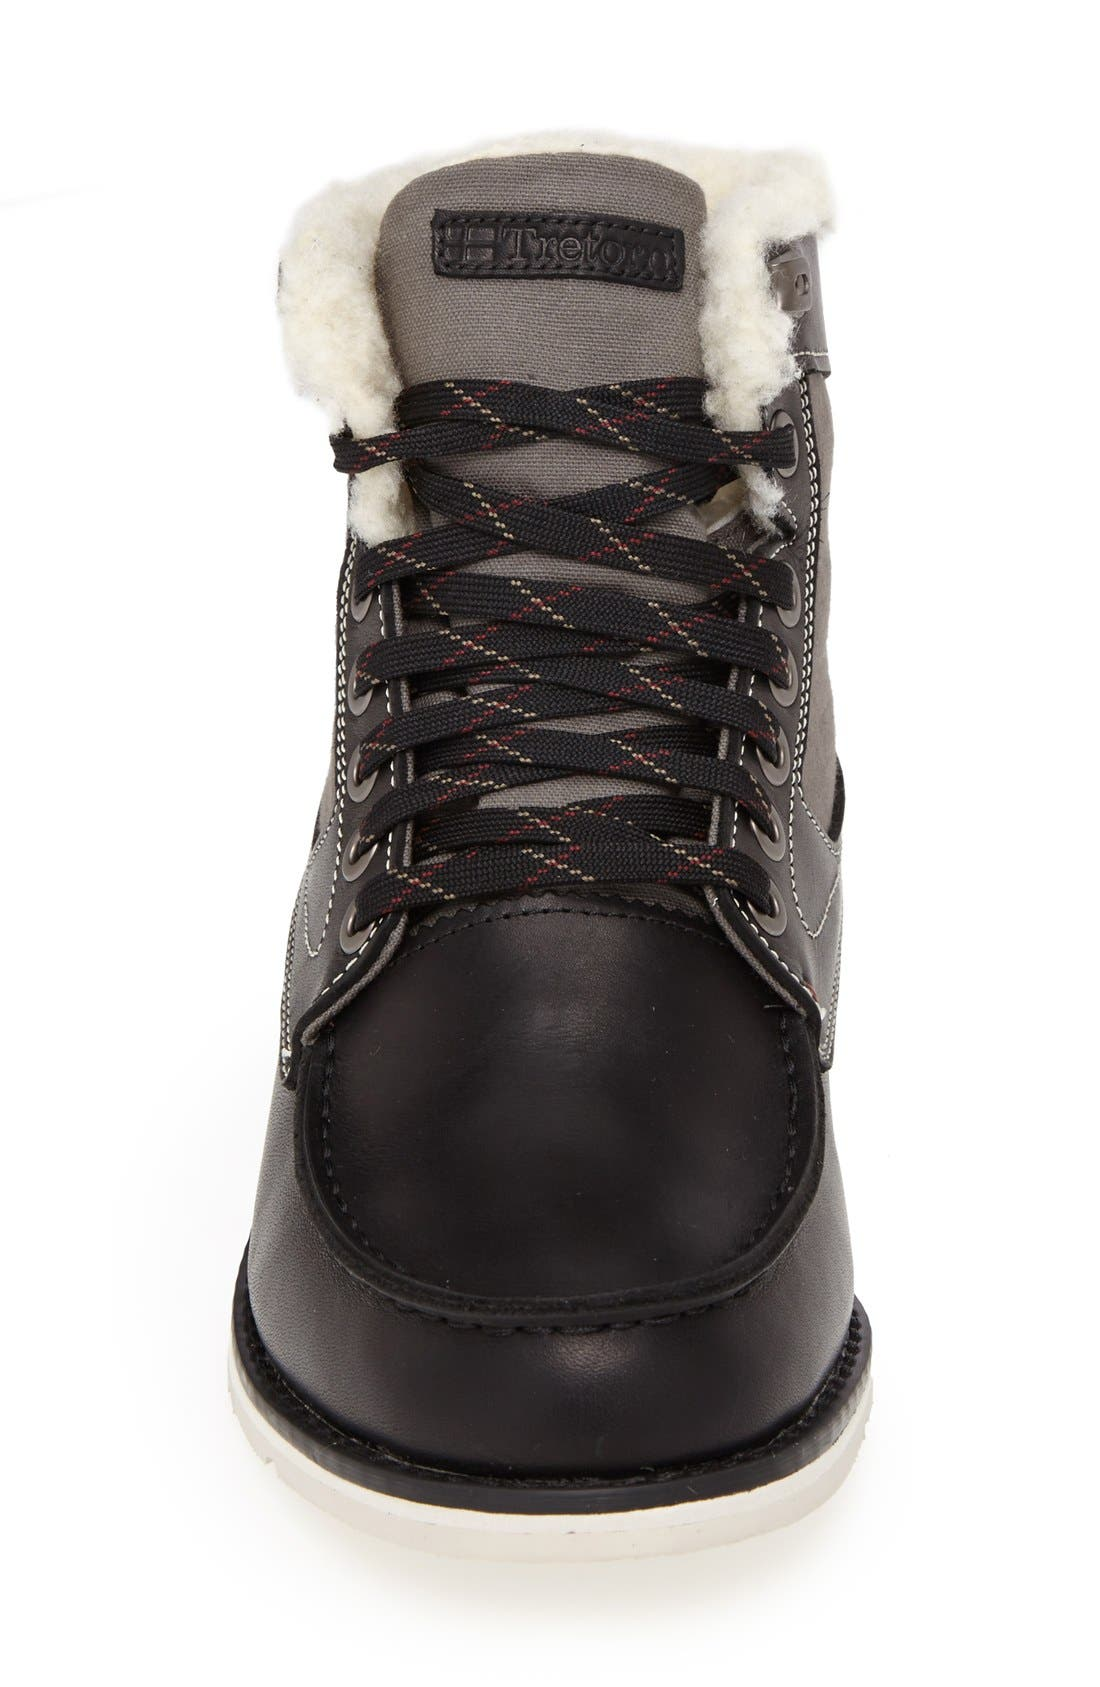 'Gärde Stövel Vinter GTX' Boot,                             Alternate thumbnail 7, color,